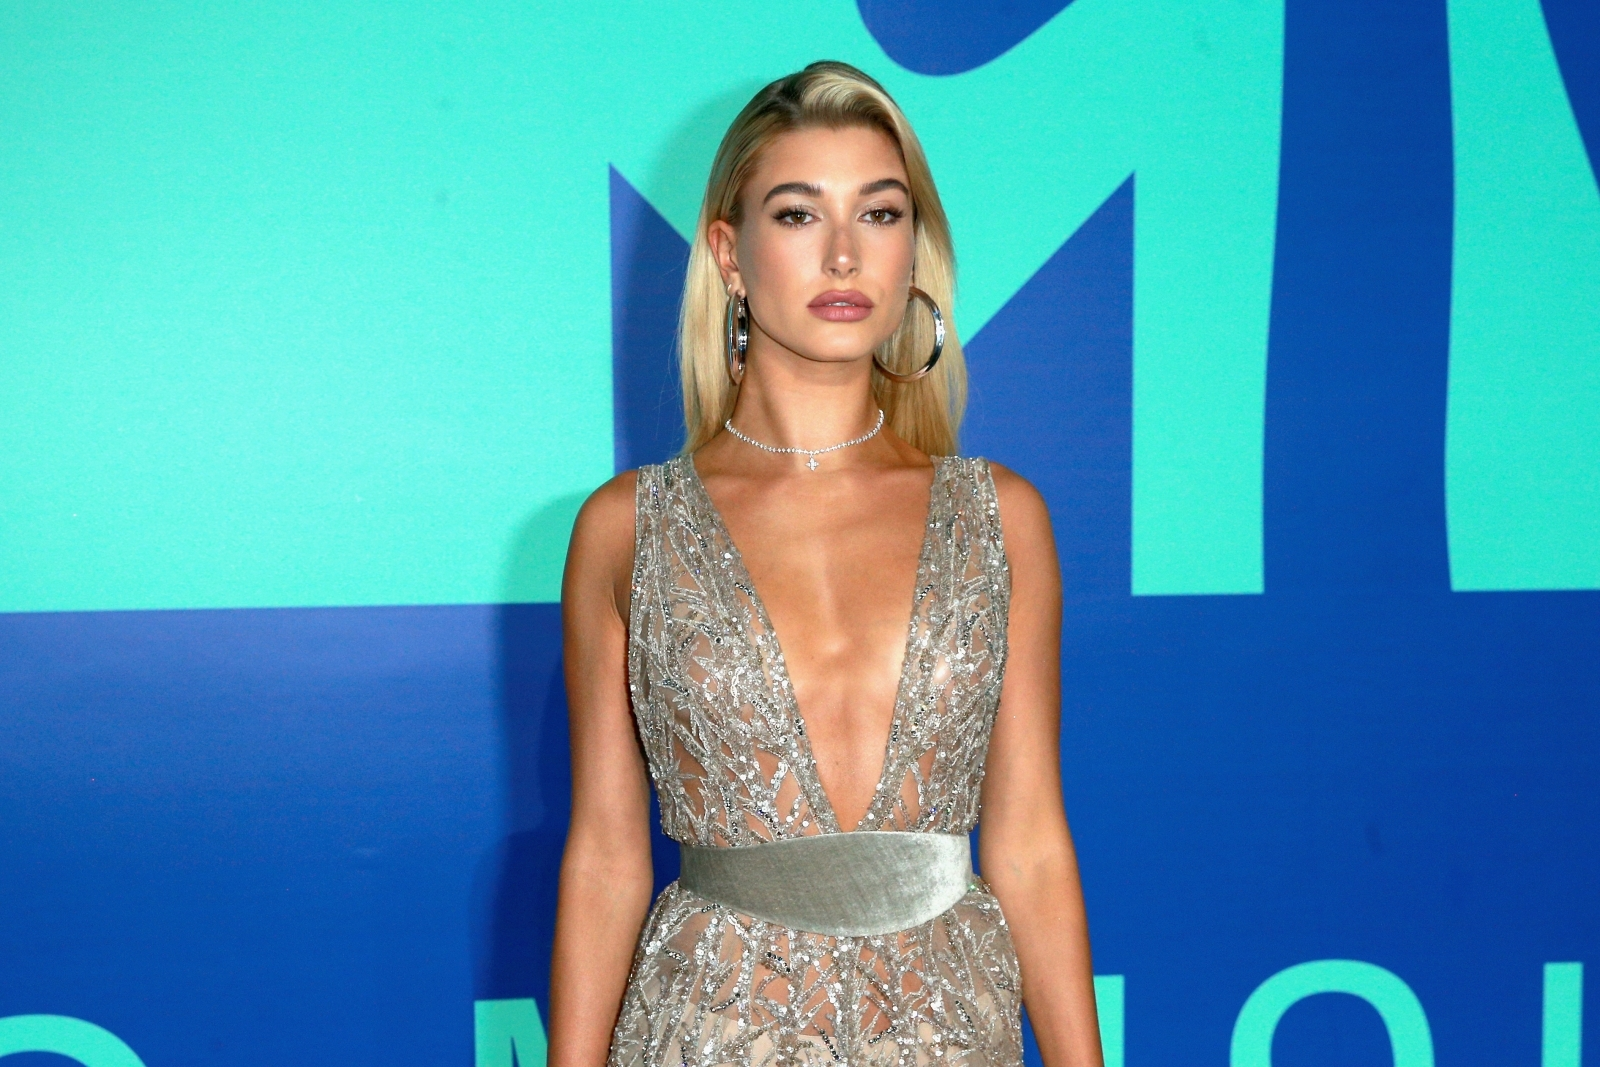 Shawn Mendes & Hailey Baldwin Cuddled At A Concert, Reigniting Romance Rumors